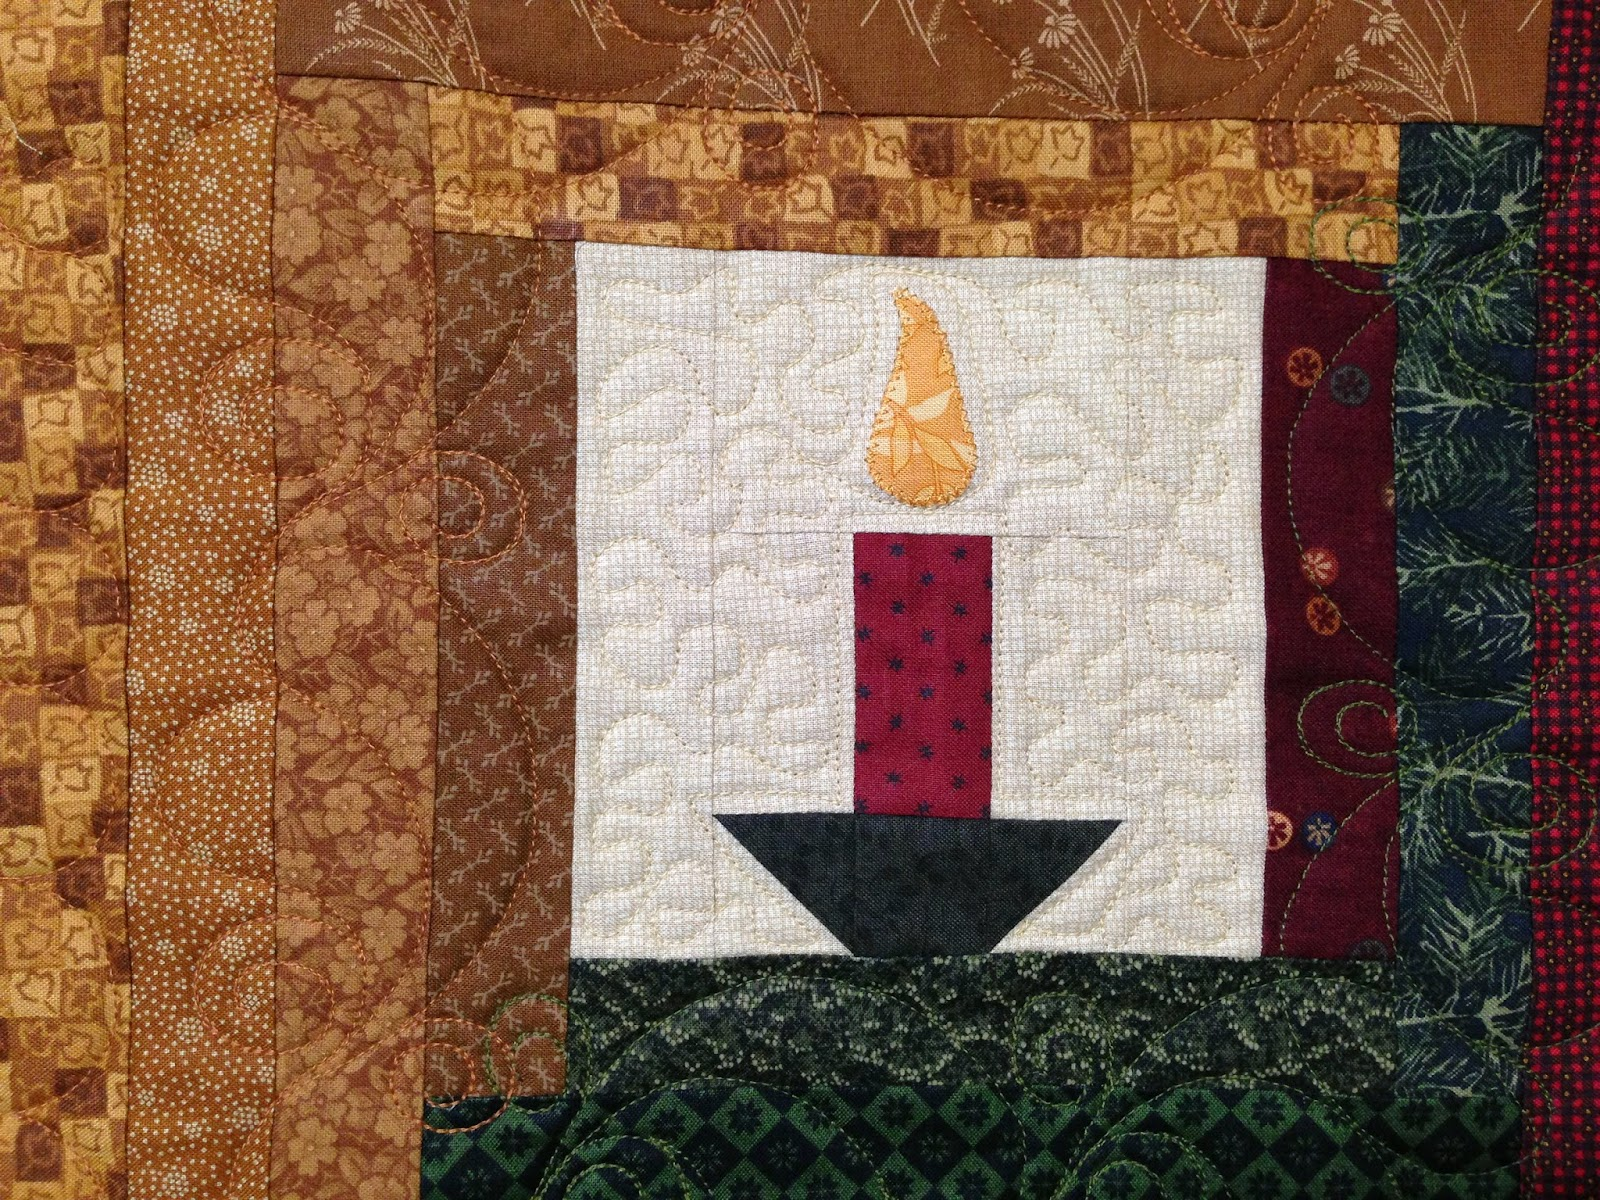 Mei Yi Pflum's Christ is Born Christmas Quilt